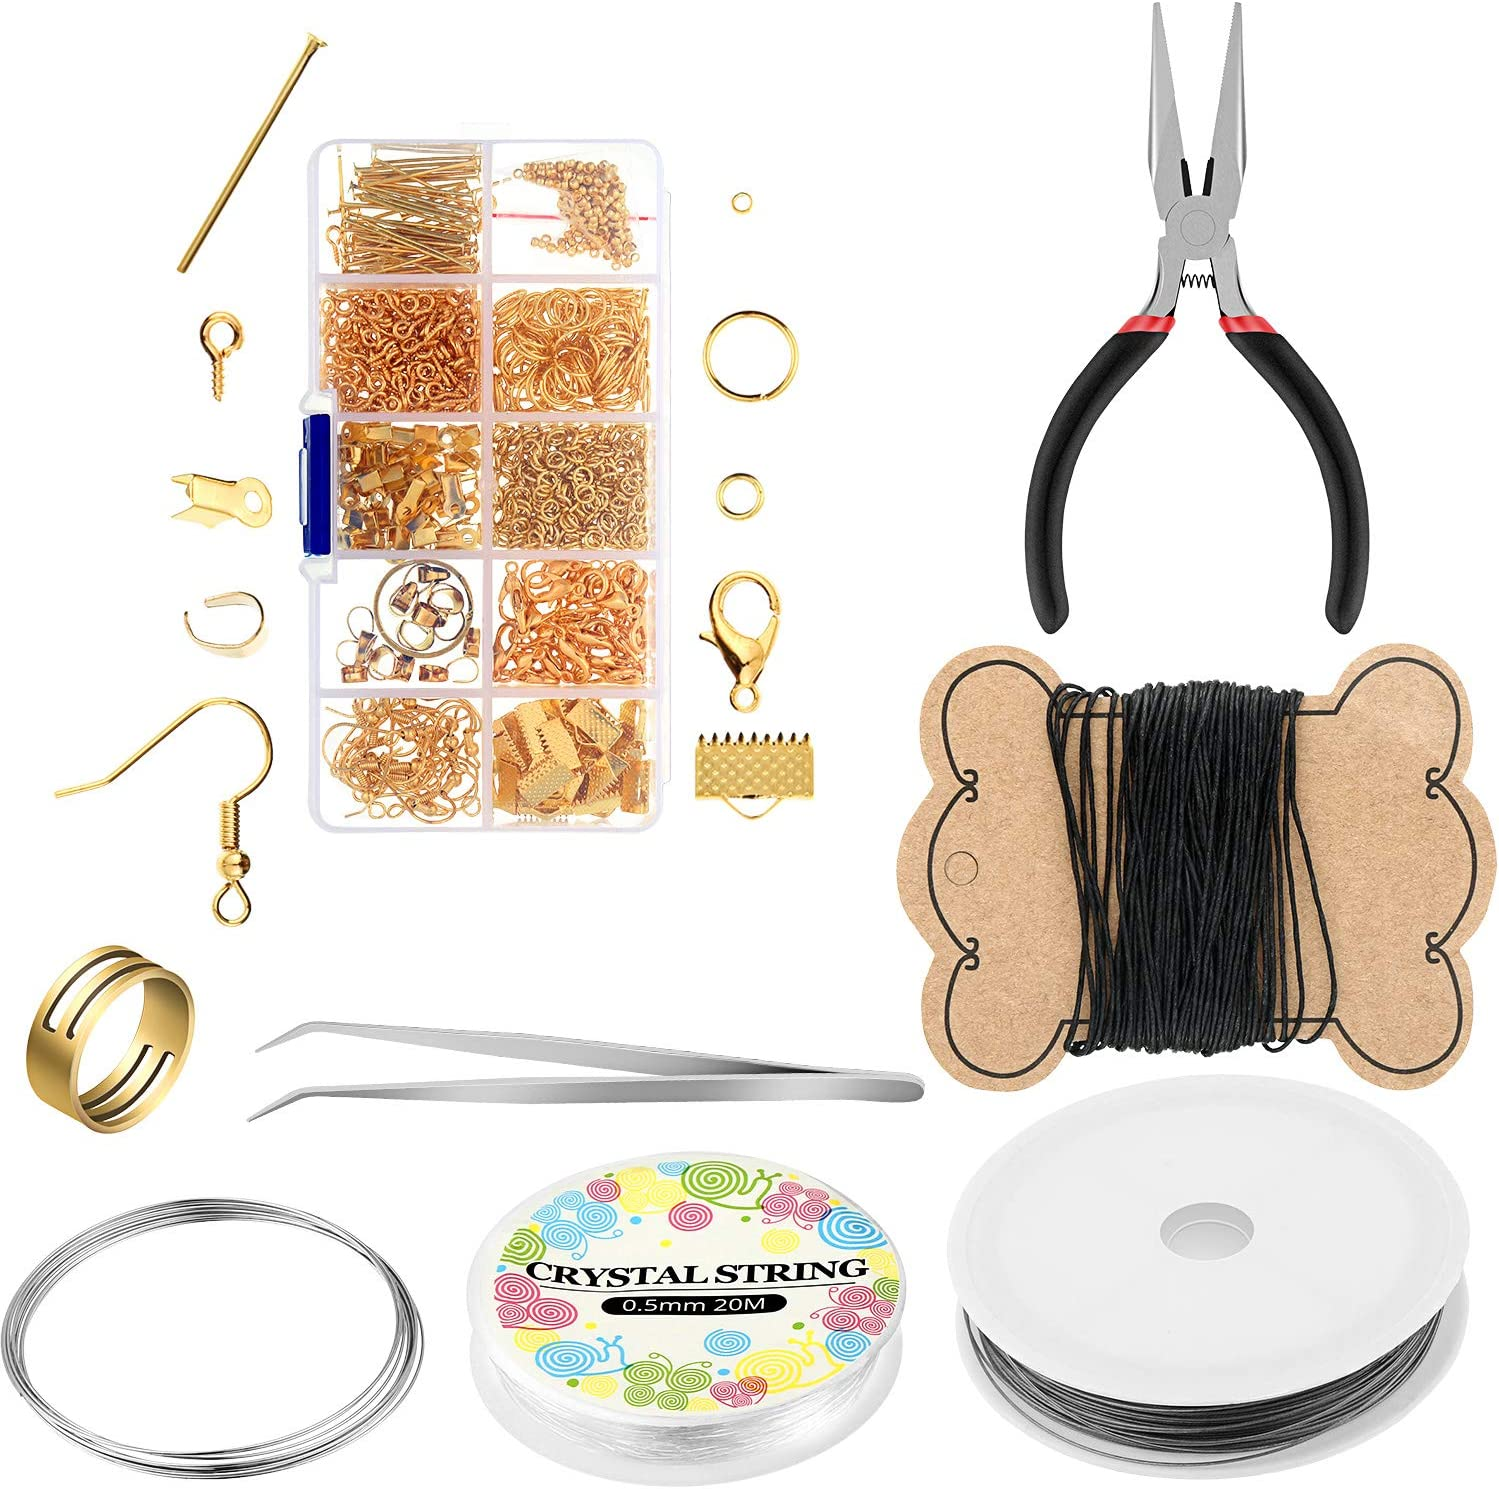 21 Pieces Faux Leather Sheets with Earring Making Kit Includes Litchi and Glitter Faux Leather Sheets Jumps Rings Earring Hooks and More Complete Tools for Earrings Making Supplies